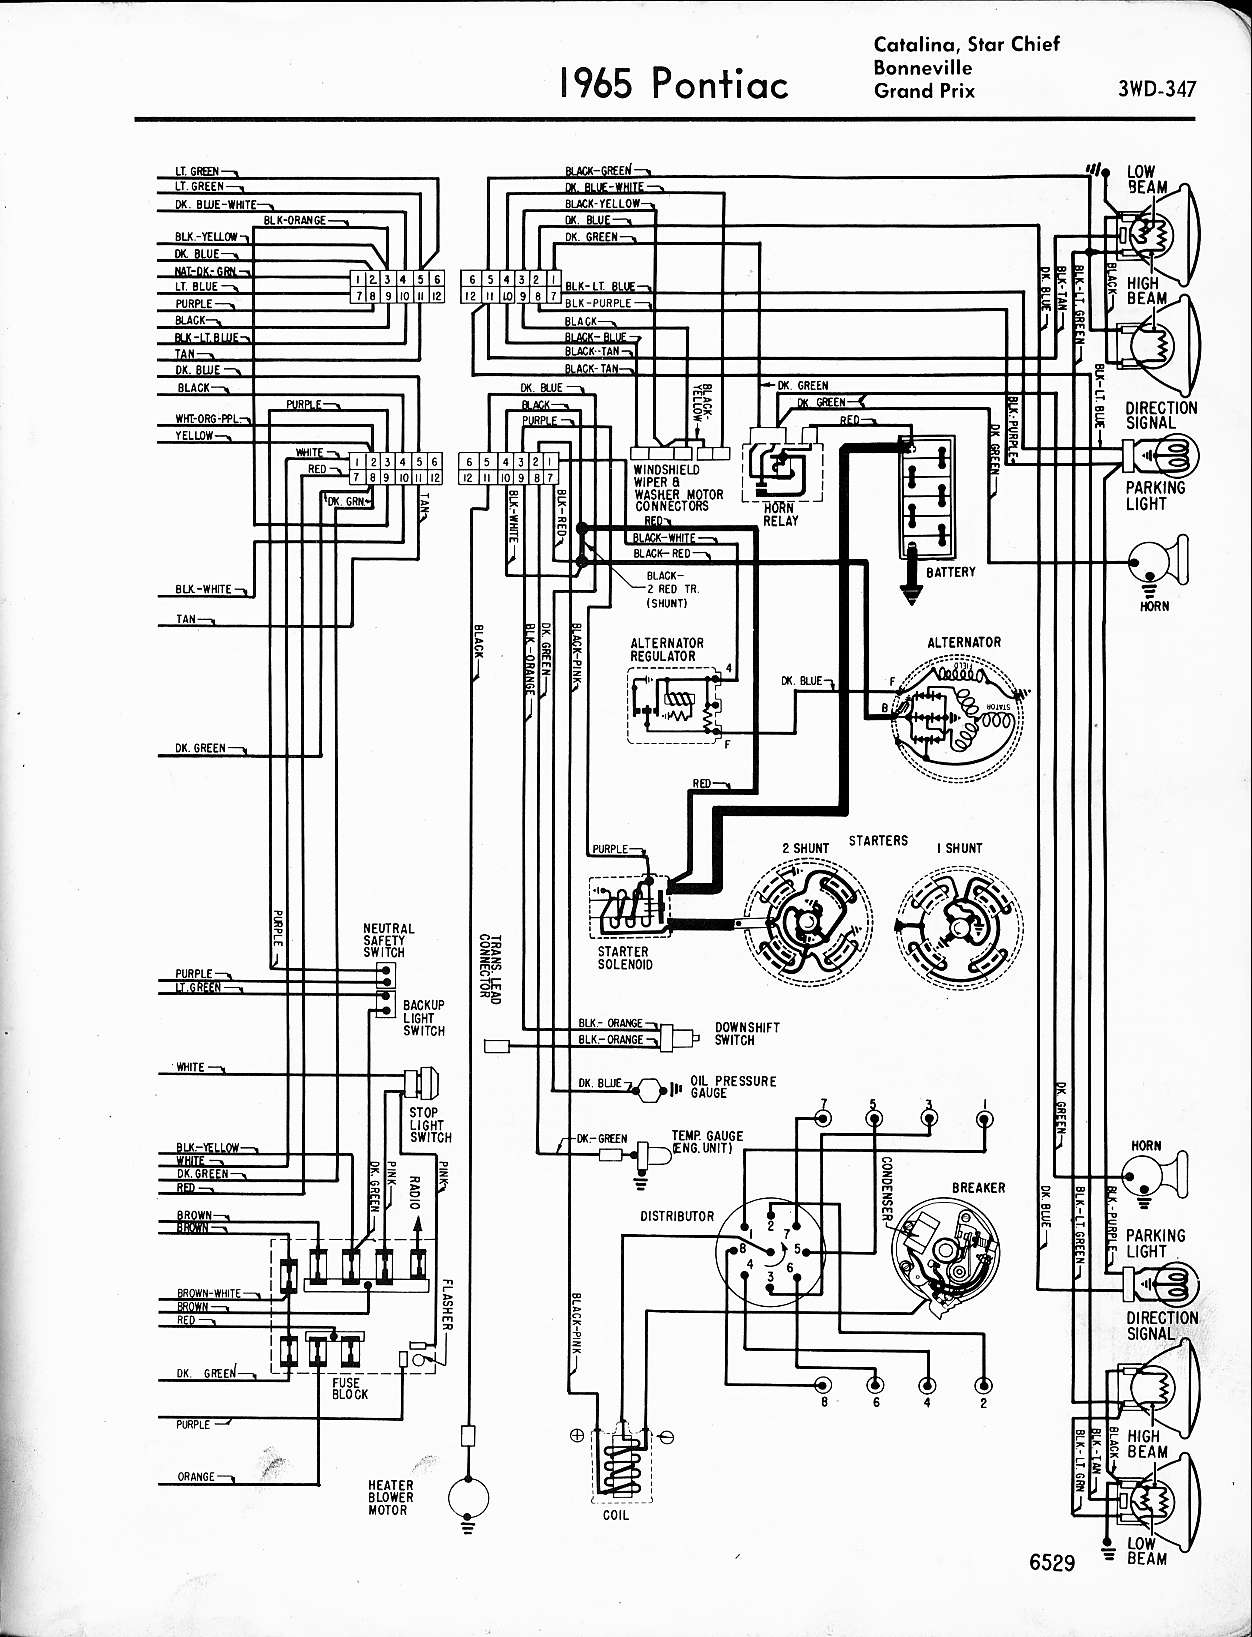 2006 Pontiac Gto Wiring Diagram Circuit Schema Hyundai Tiburon 1969 Electrical Diagrams Schematics 1971